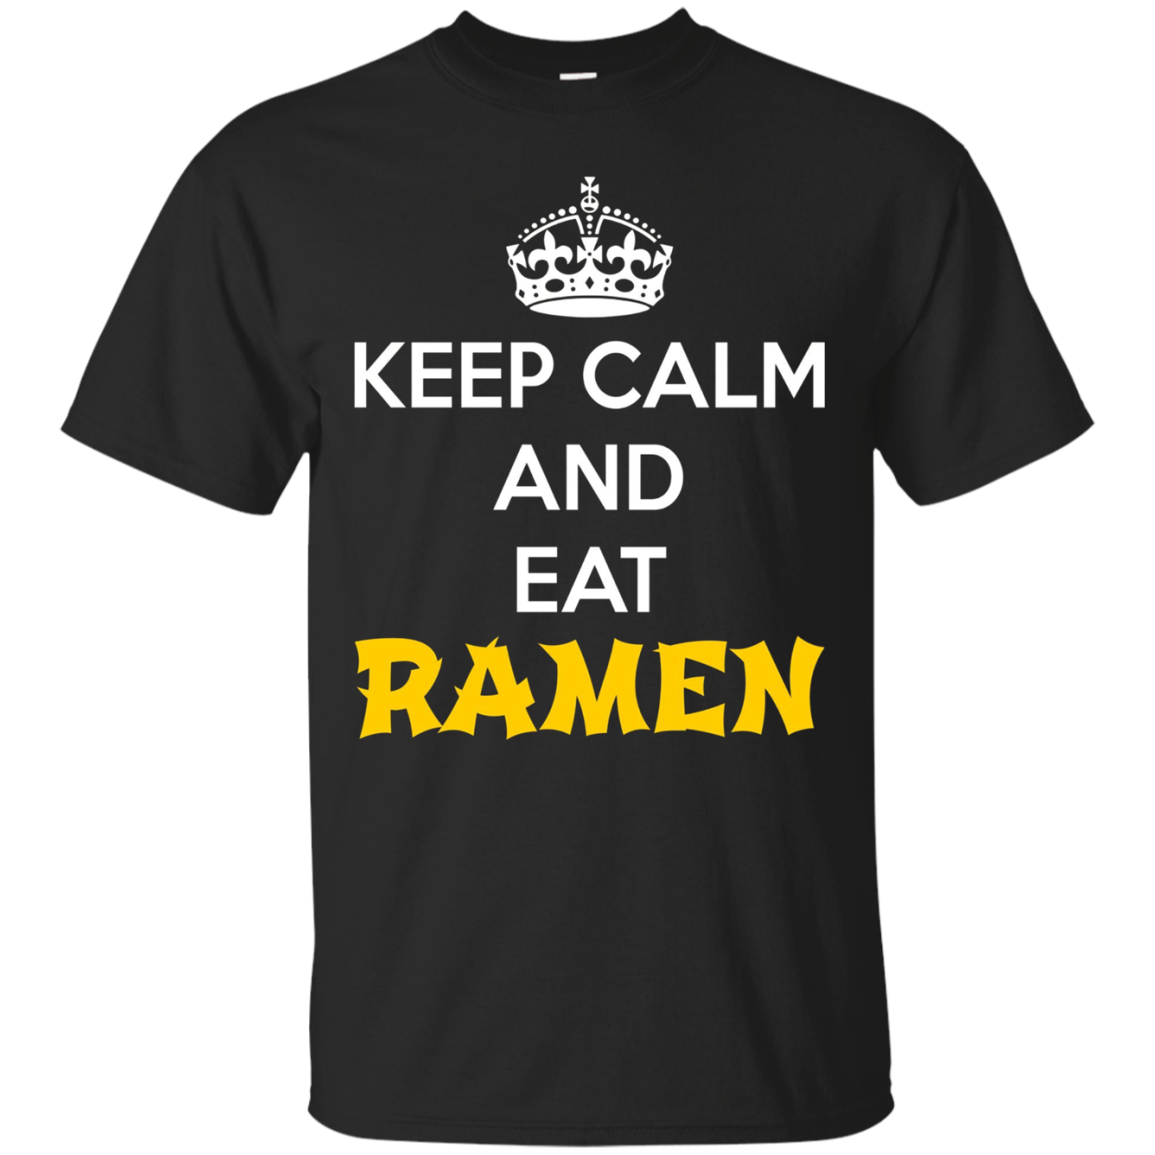 Keep Calm and eat Ramen T-Shirt - Funny Ramen Shirt